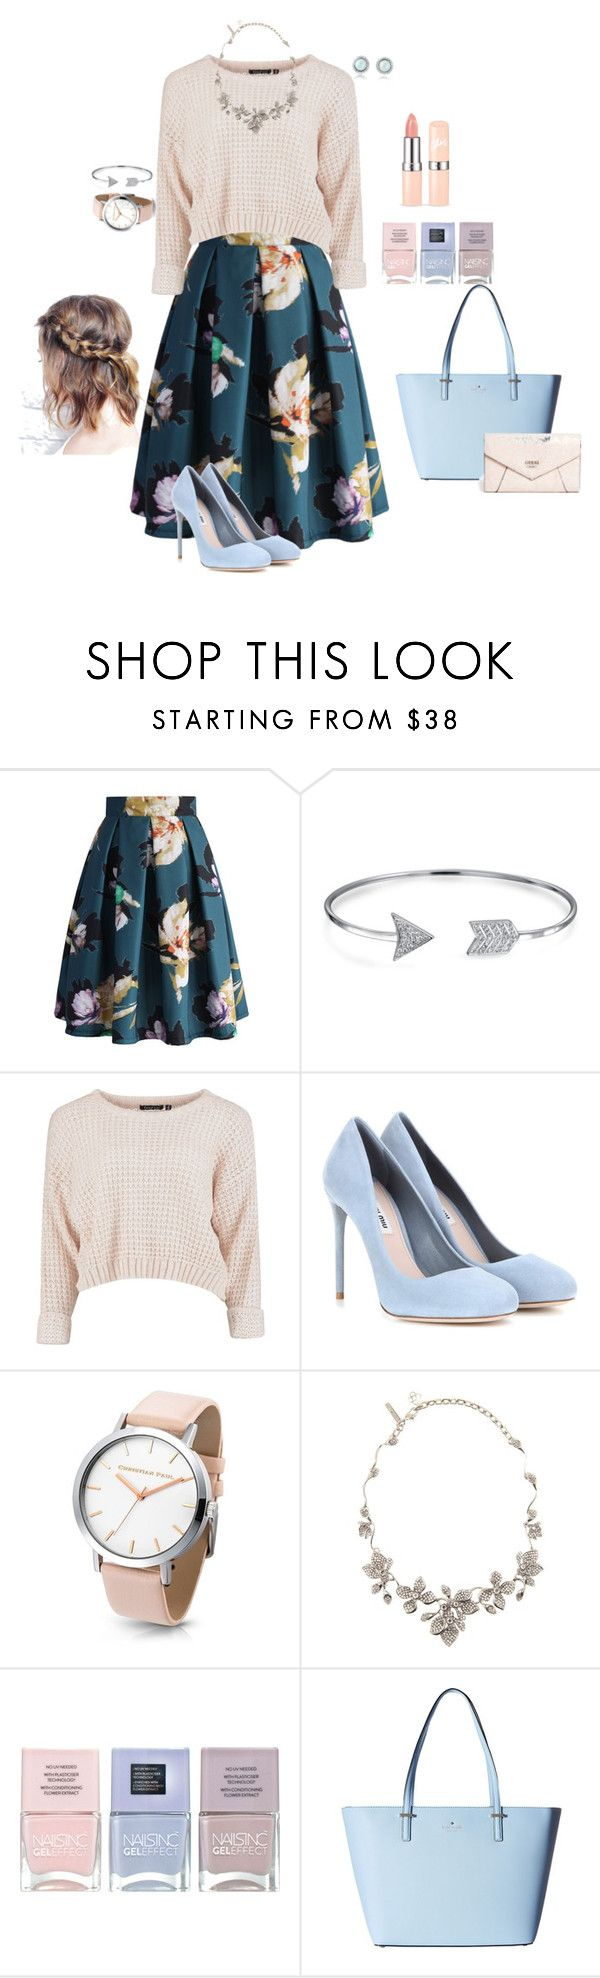 Cotton Candy Clouds by loral-lavender on Polyvore featuring Chicwish, Miu Miu, Kate Spade, GUESS, Oscar de la Renta, Bling Jewelry and Nails Inc.